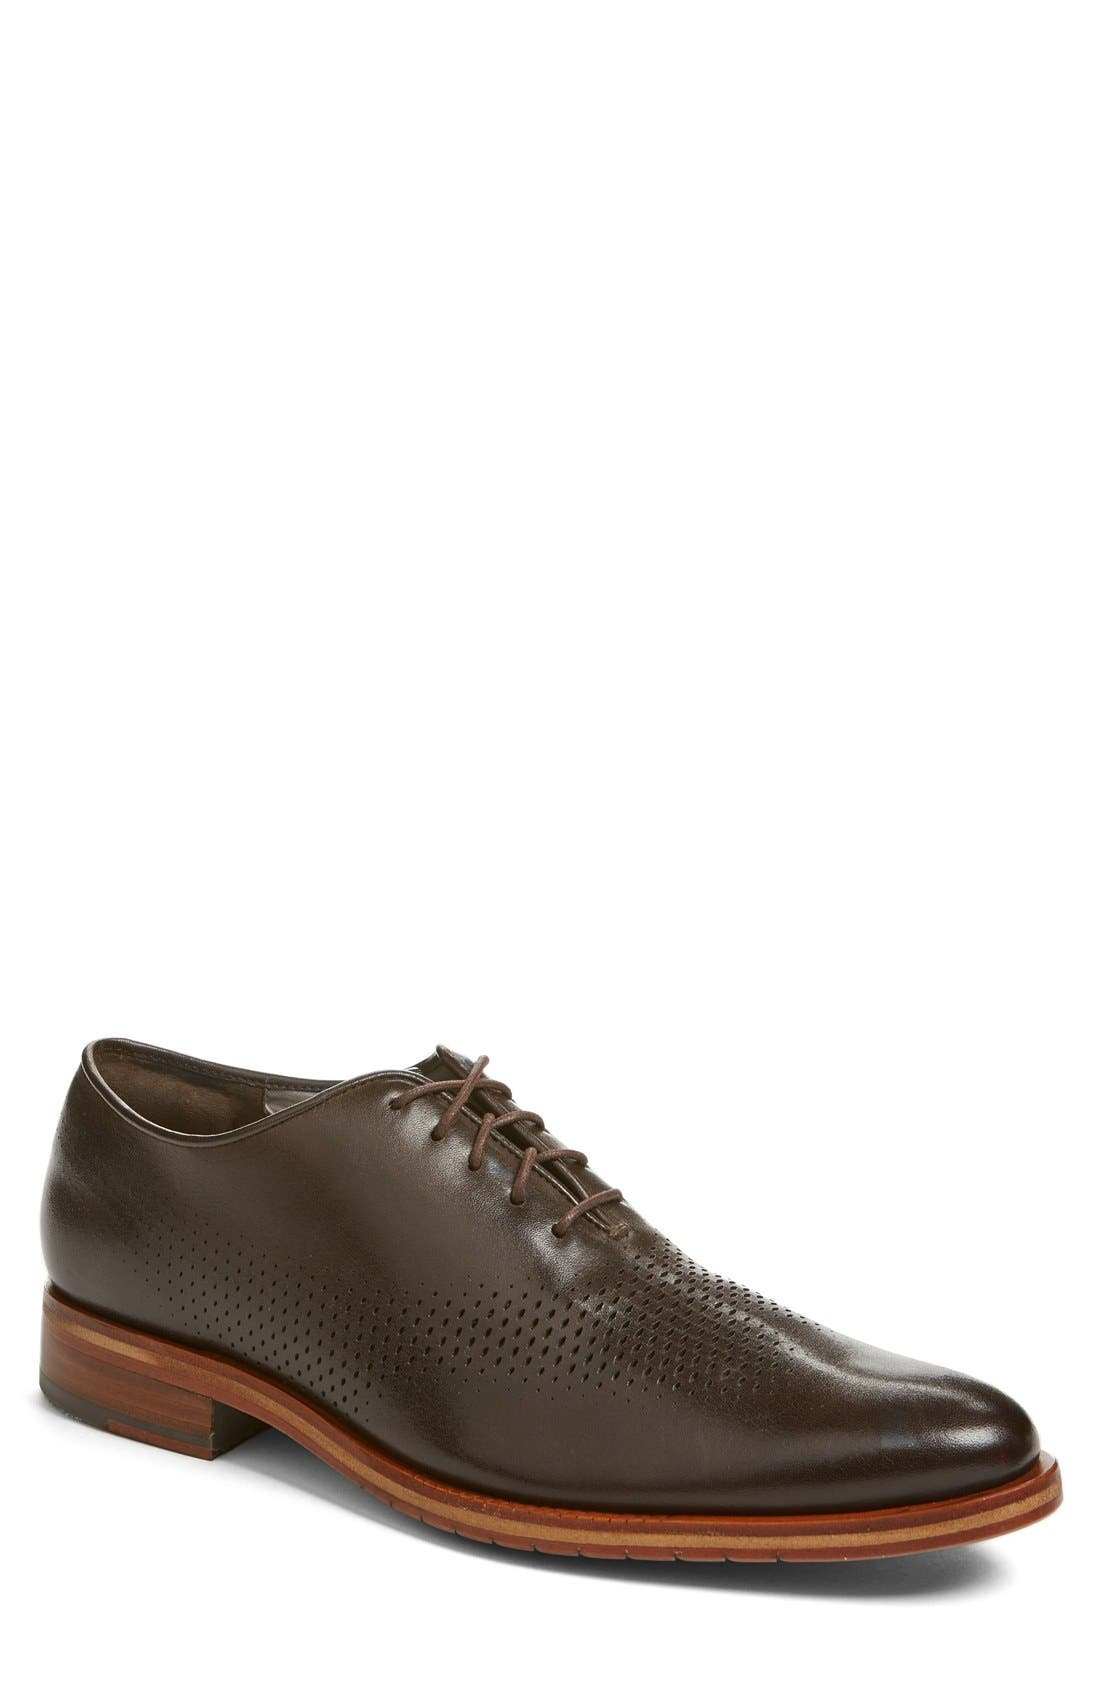 Main Image - Cole Haan 'Washington' Plain Toe Oxford (Men)